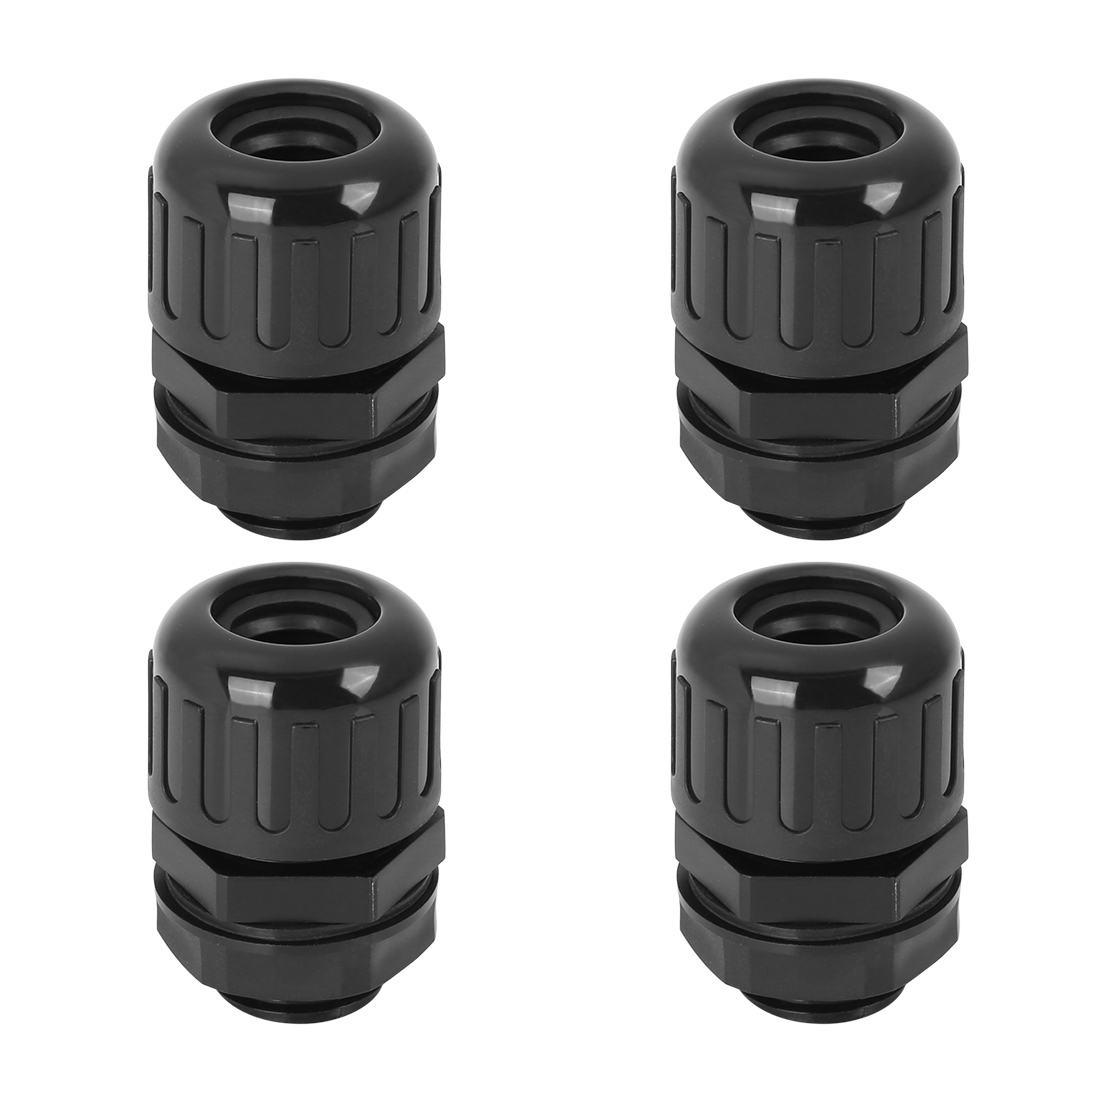 4pcs Cable Gland Black Waterproof Wire Gland Corrugated Tube Connectors AD15.8